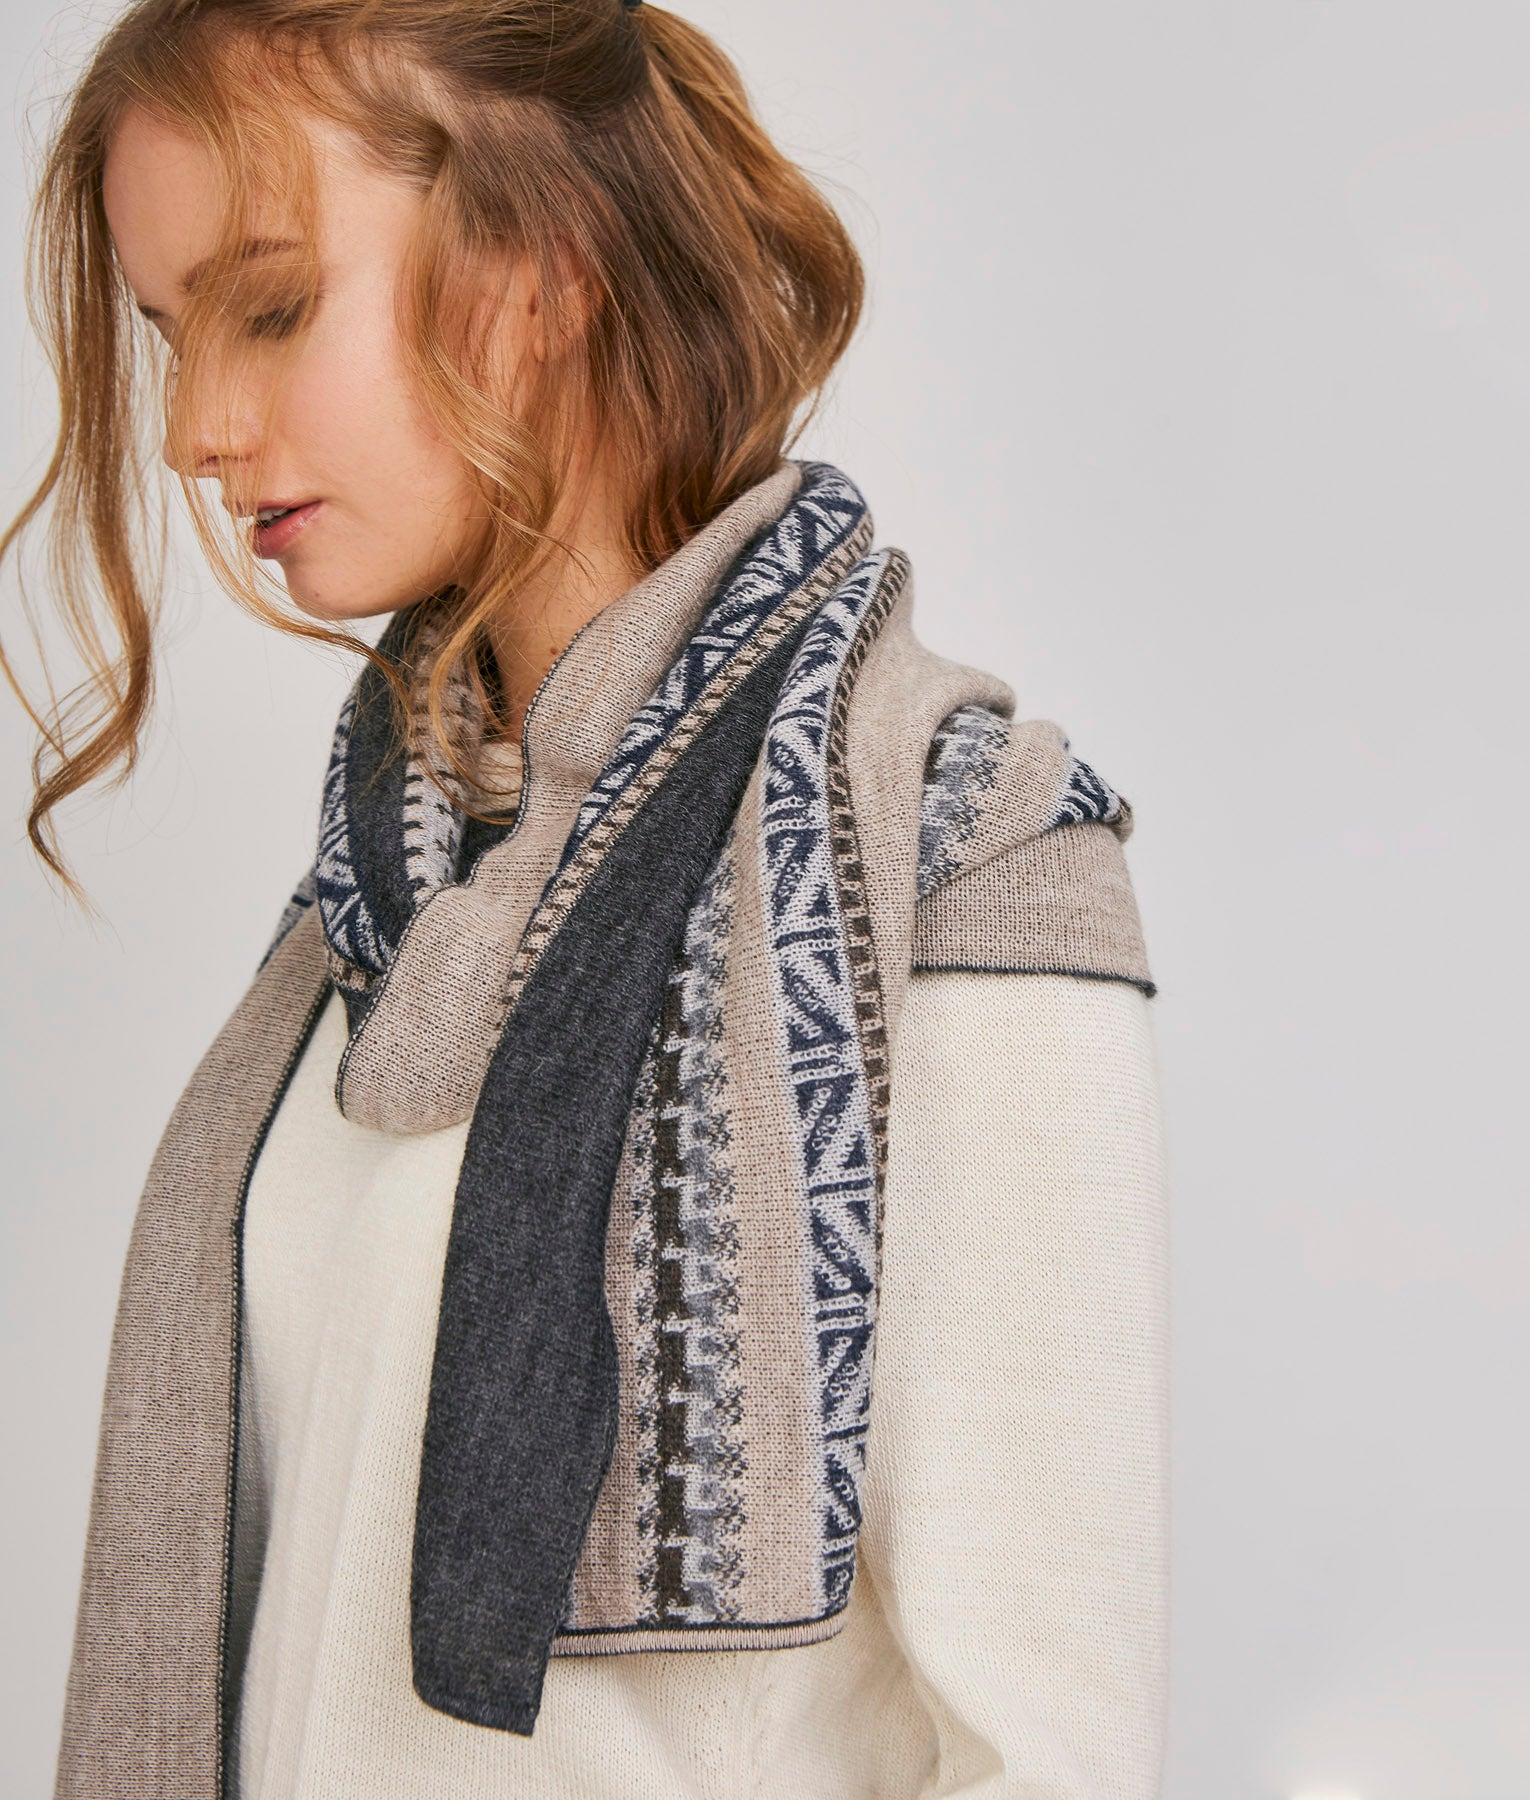 WANDERLUST THE JOURNEY SCARF REVERSIBLE